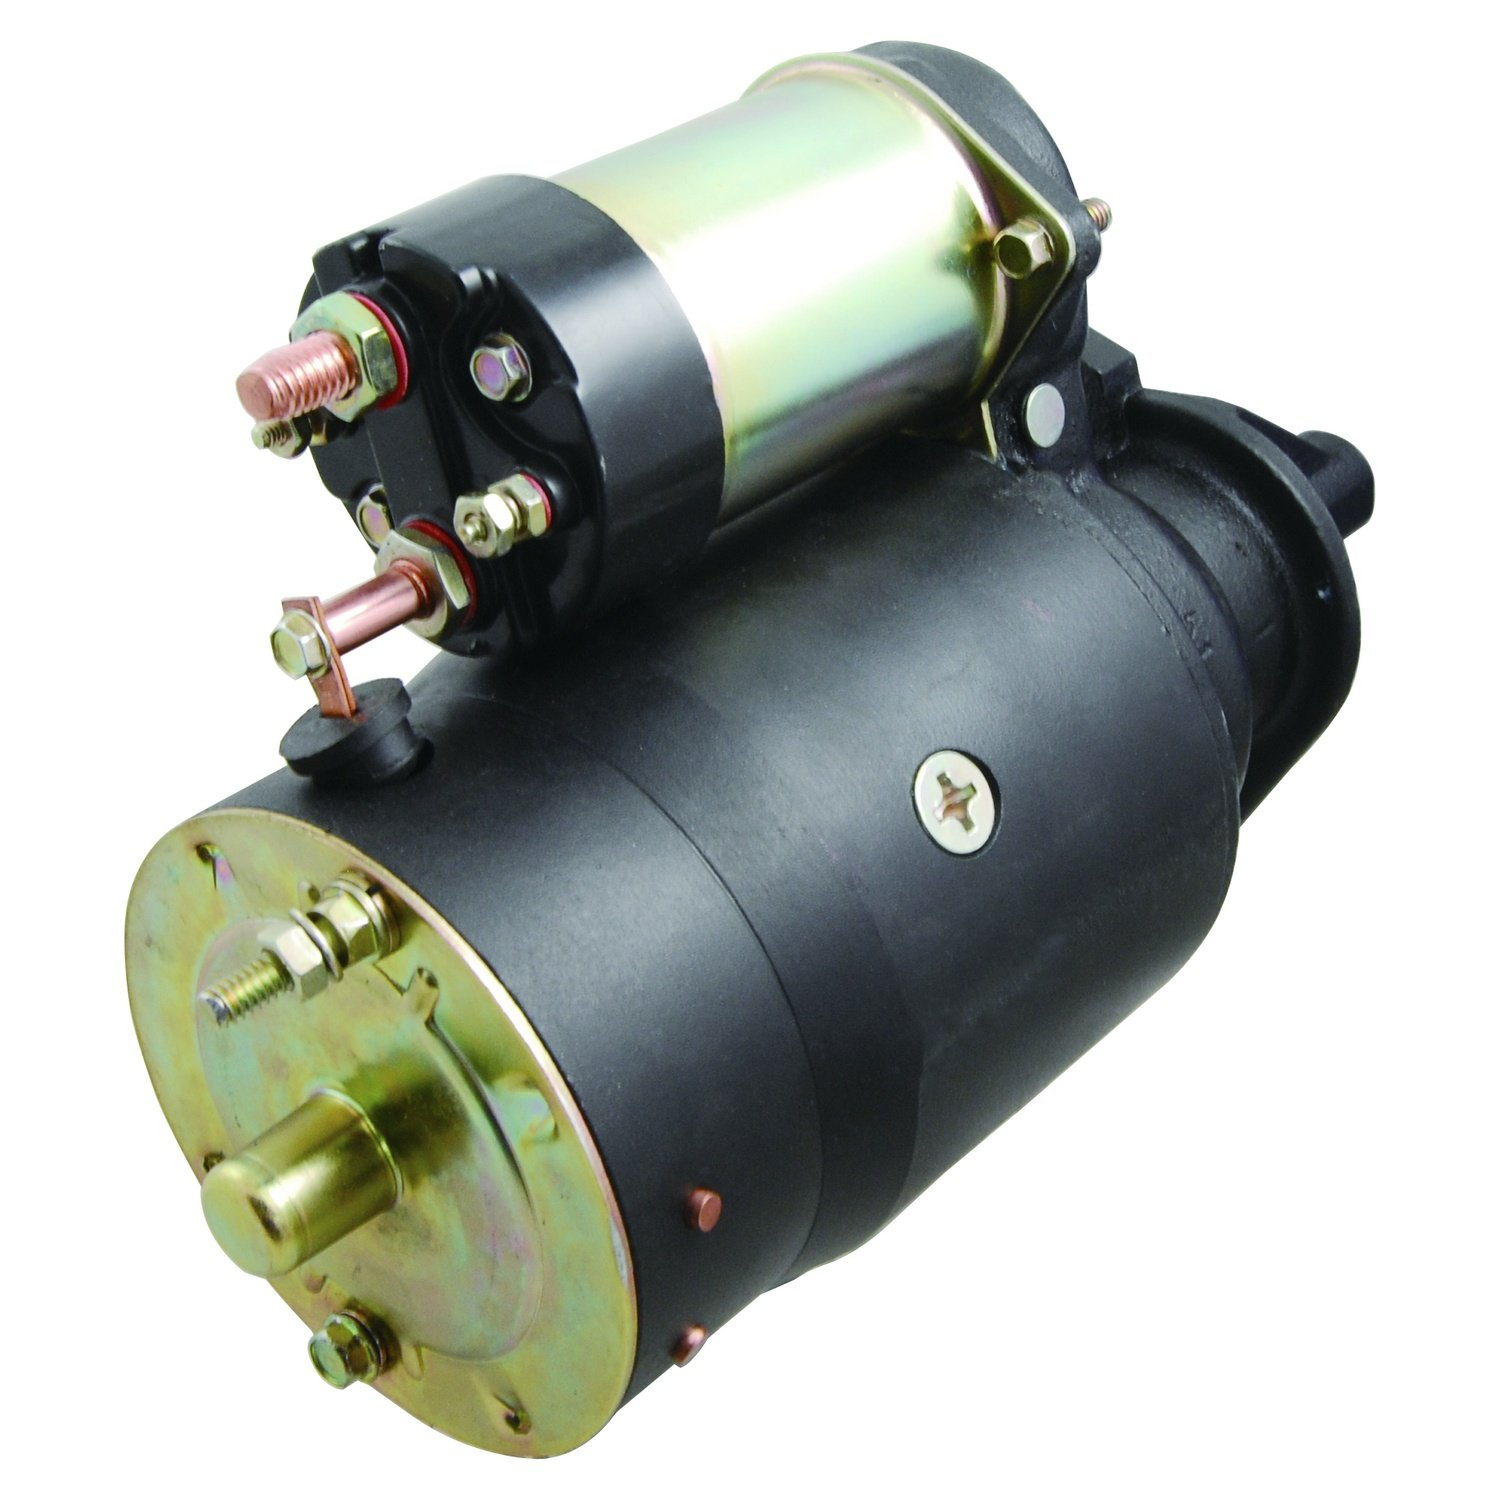 New Gm High Torque 3 Bolt Starter Fits Many 1957 Chevy Motor Applications 12volt With One Threaded Hole 1990 Automotive